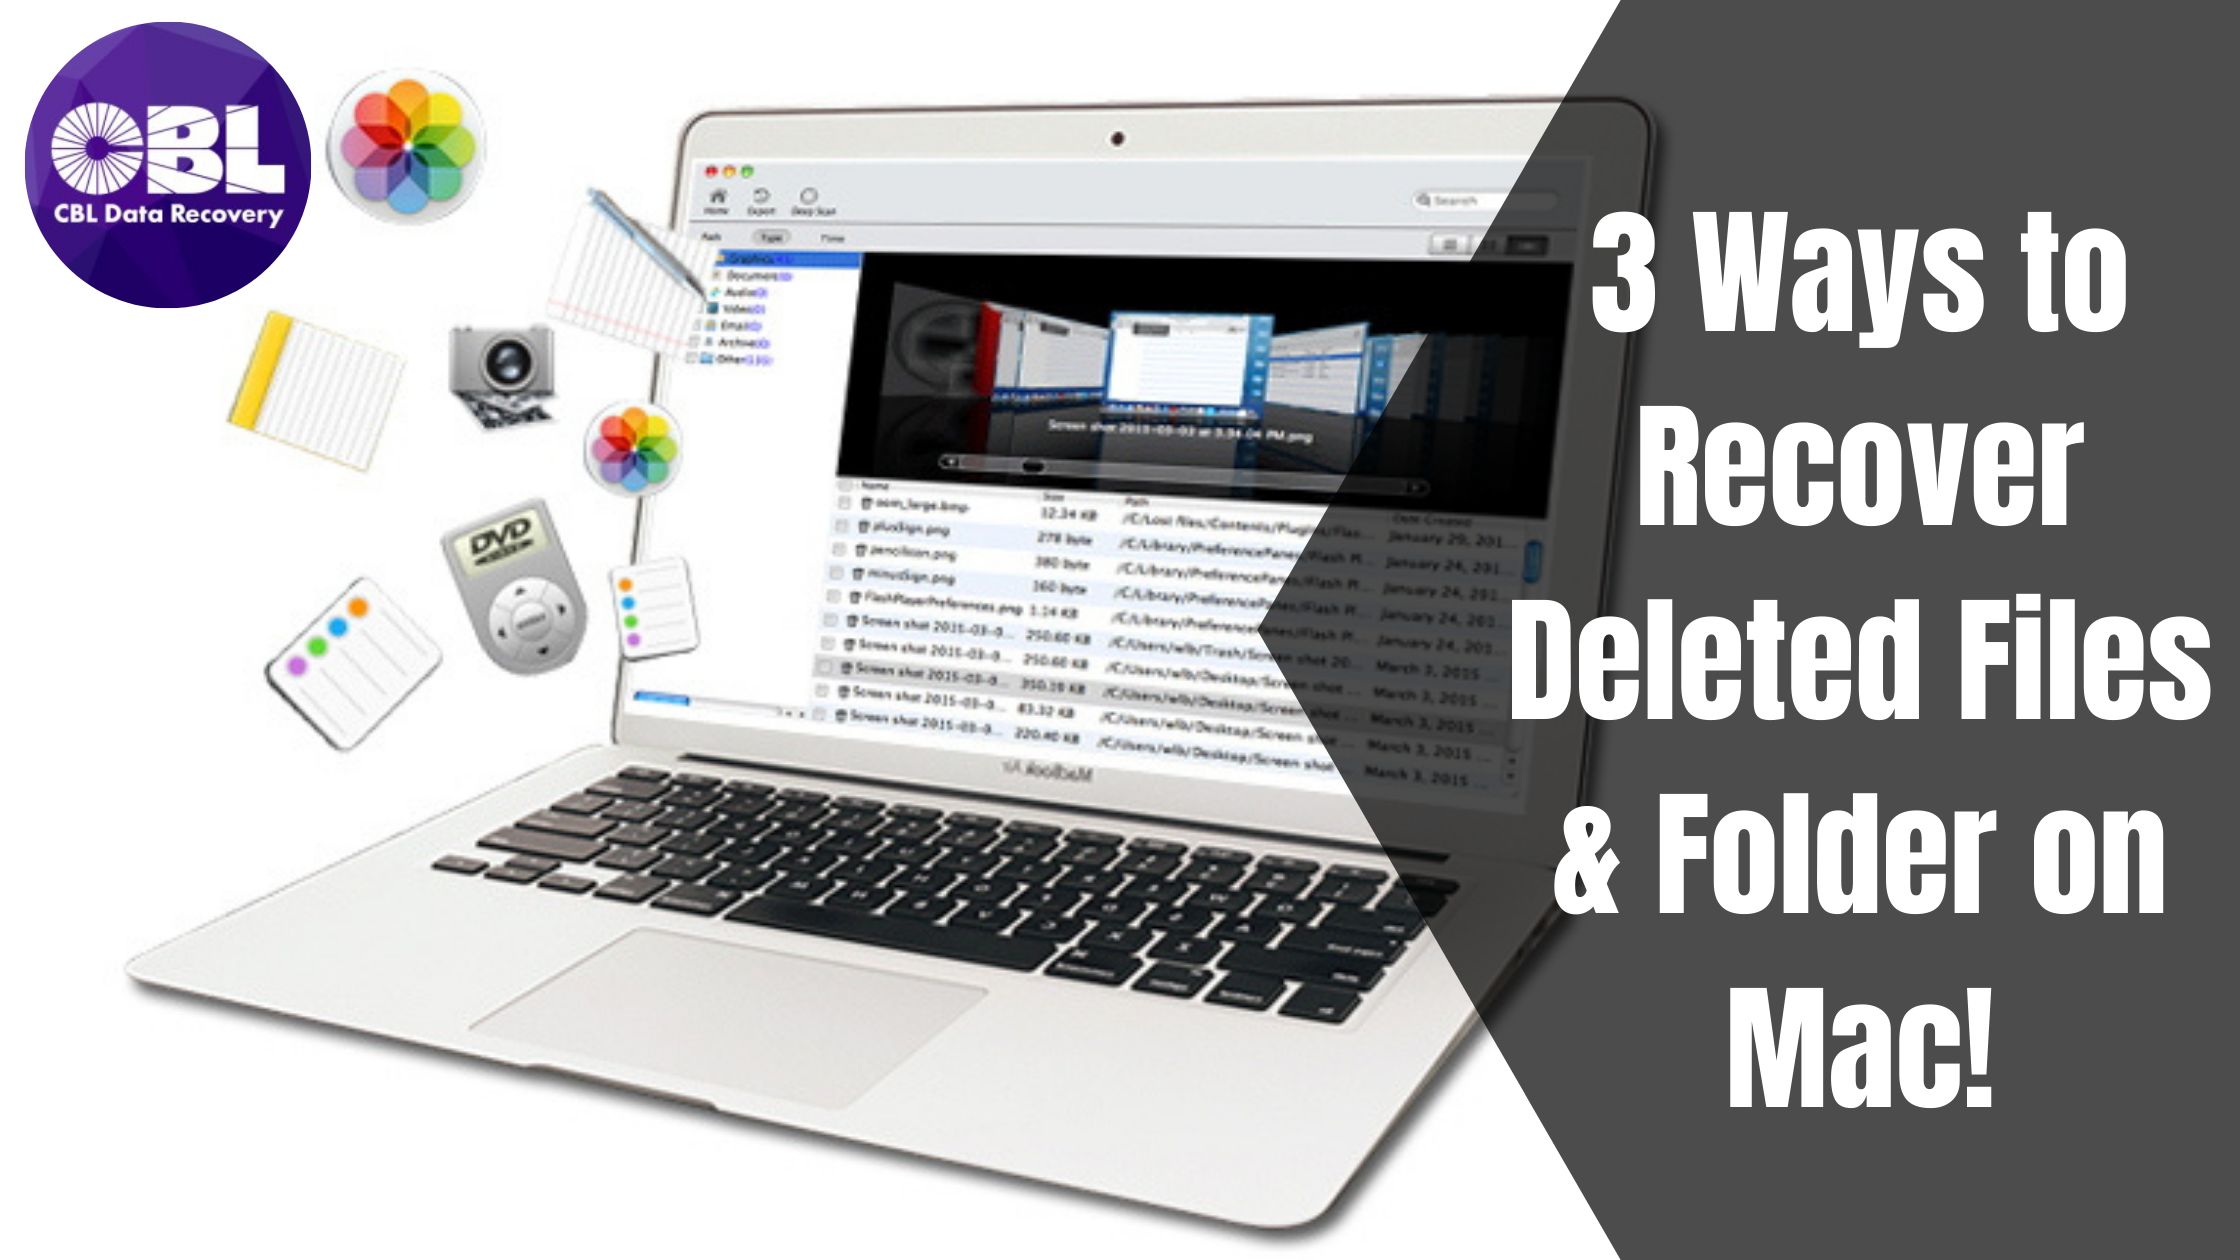 Top 3 Ways to Recover Deleted Files & Folder on Mac